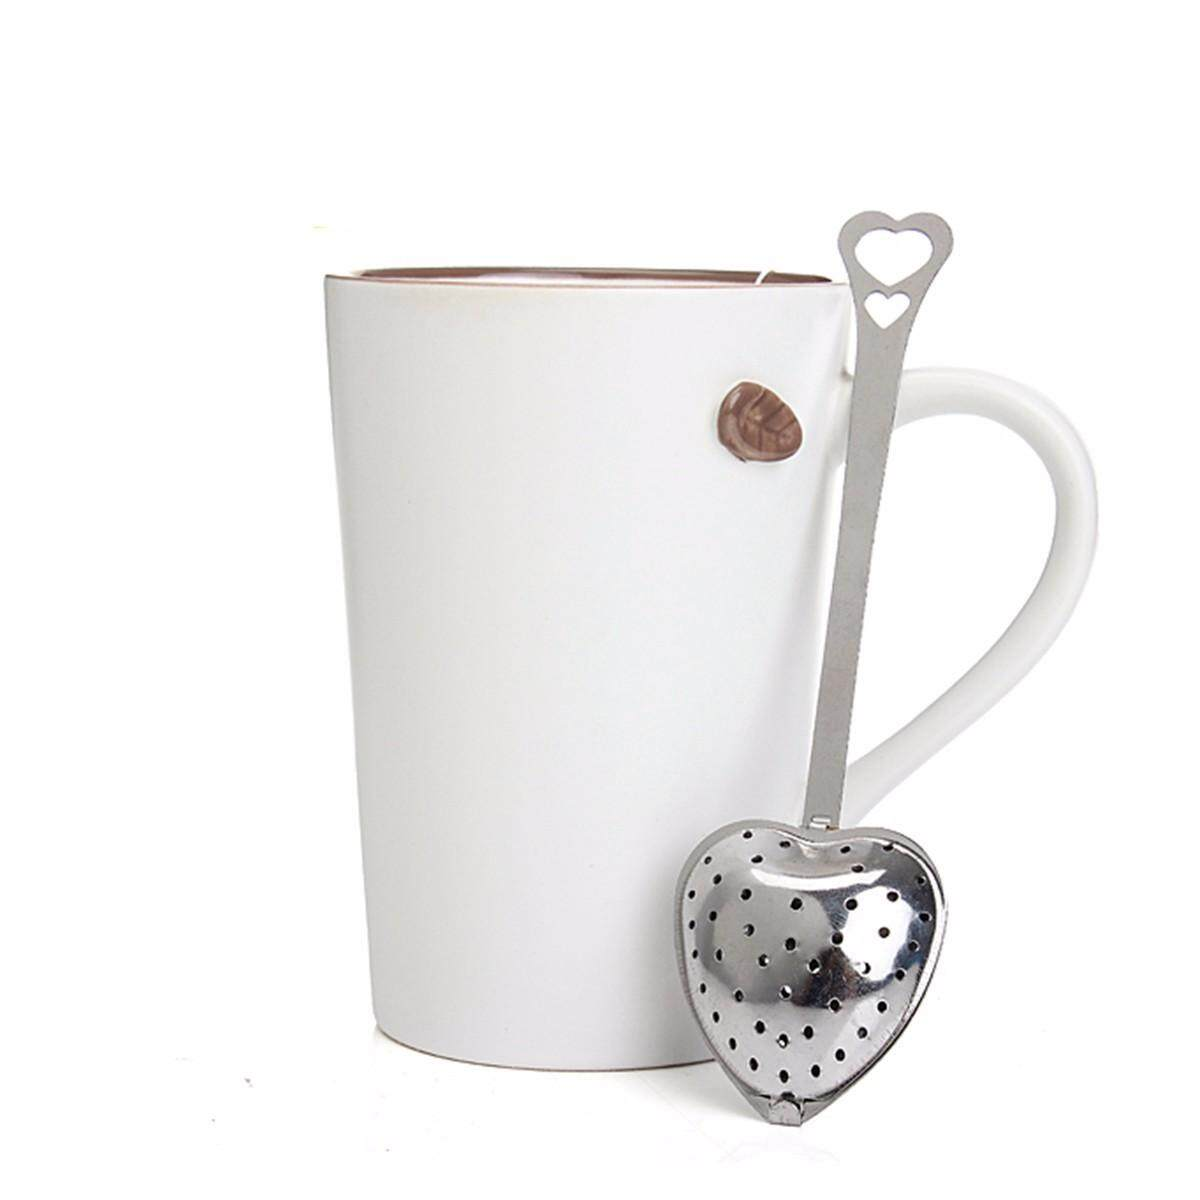 1/2pcs Stainless Steel Heart Shaped Tea Infuser Spoon Strainer Steeper Filter